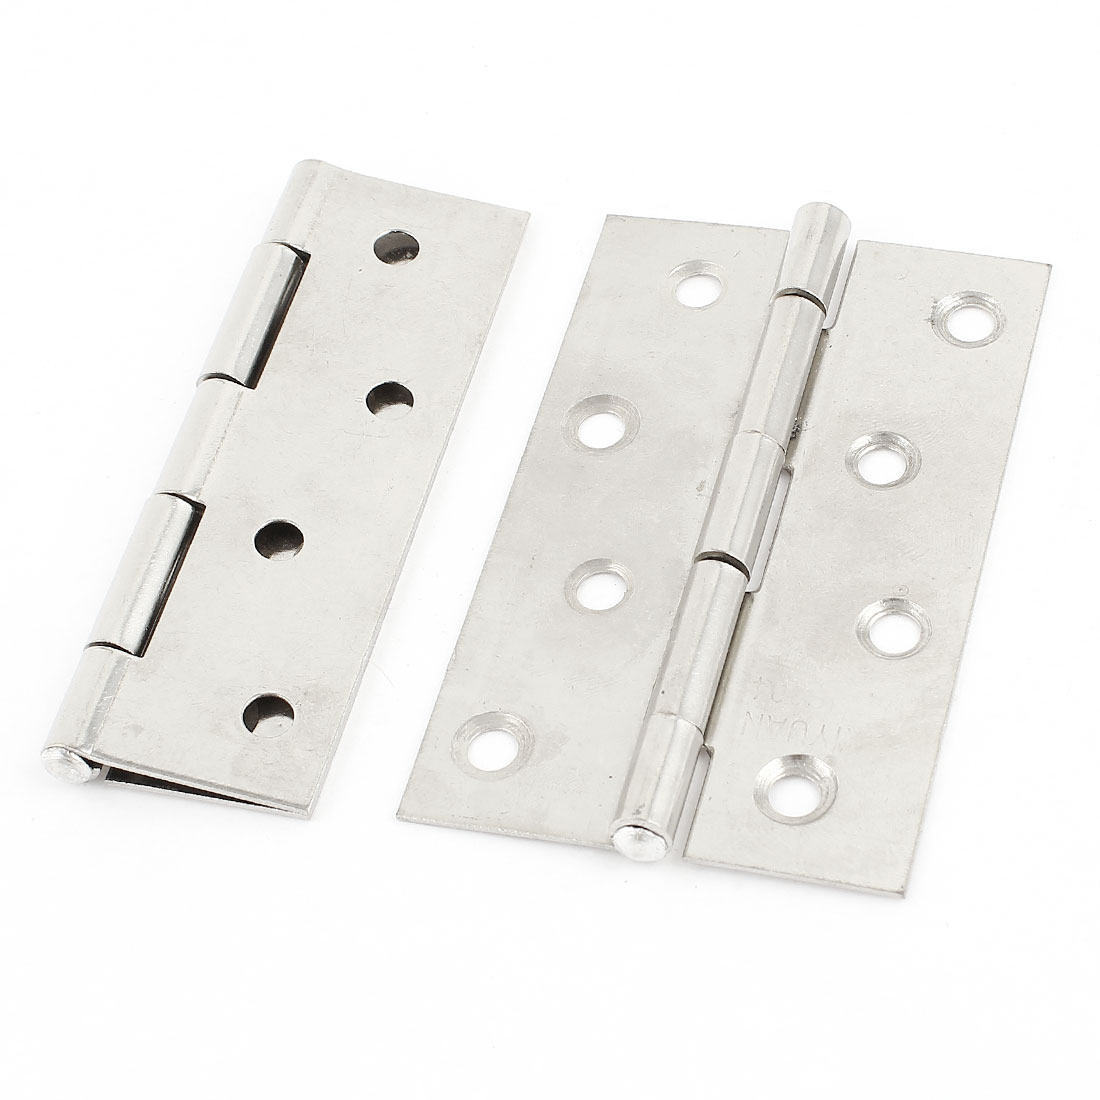 Unique Bargains 2 Pieces Stainless Steel Home Office Cabinet Gate Door Hinge 90mm Long